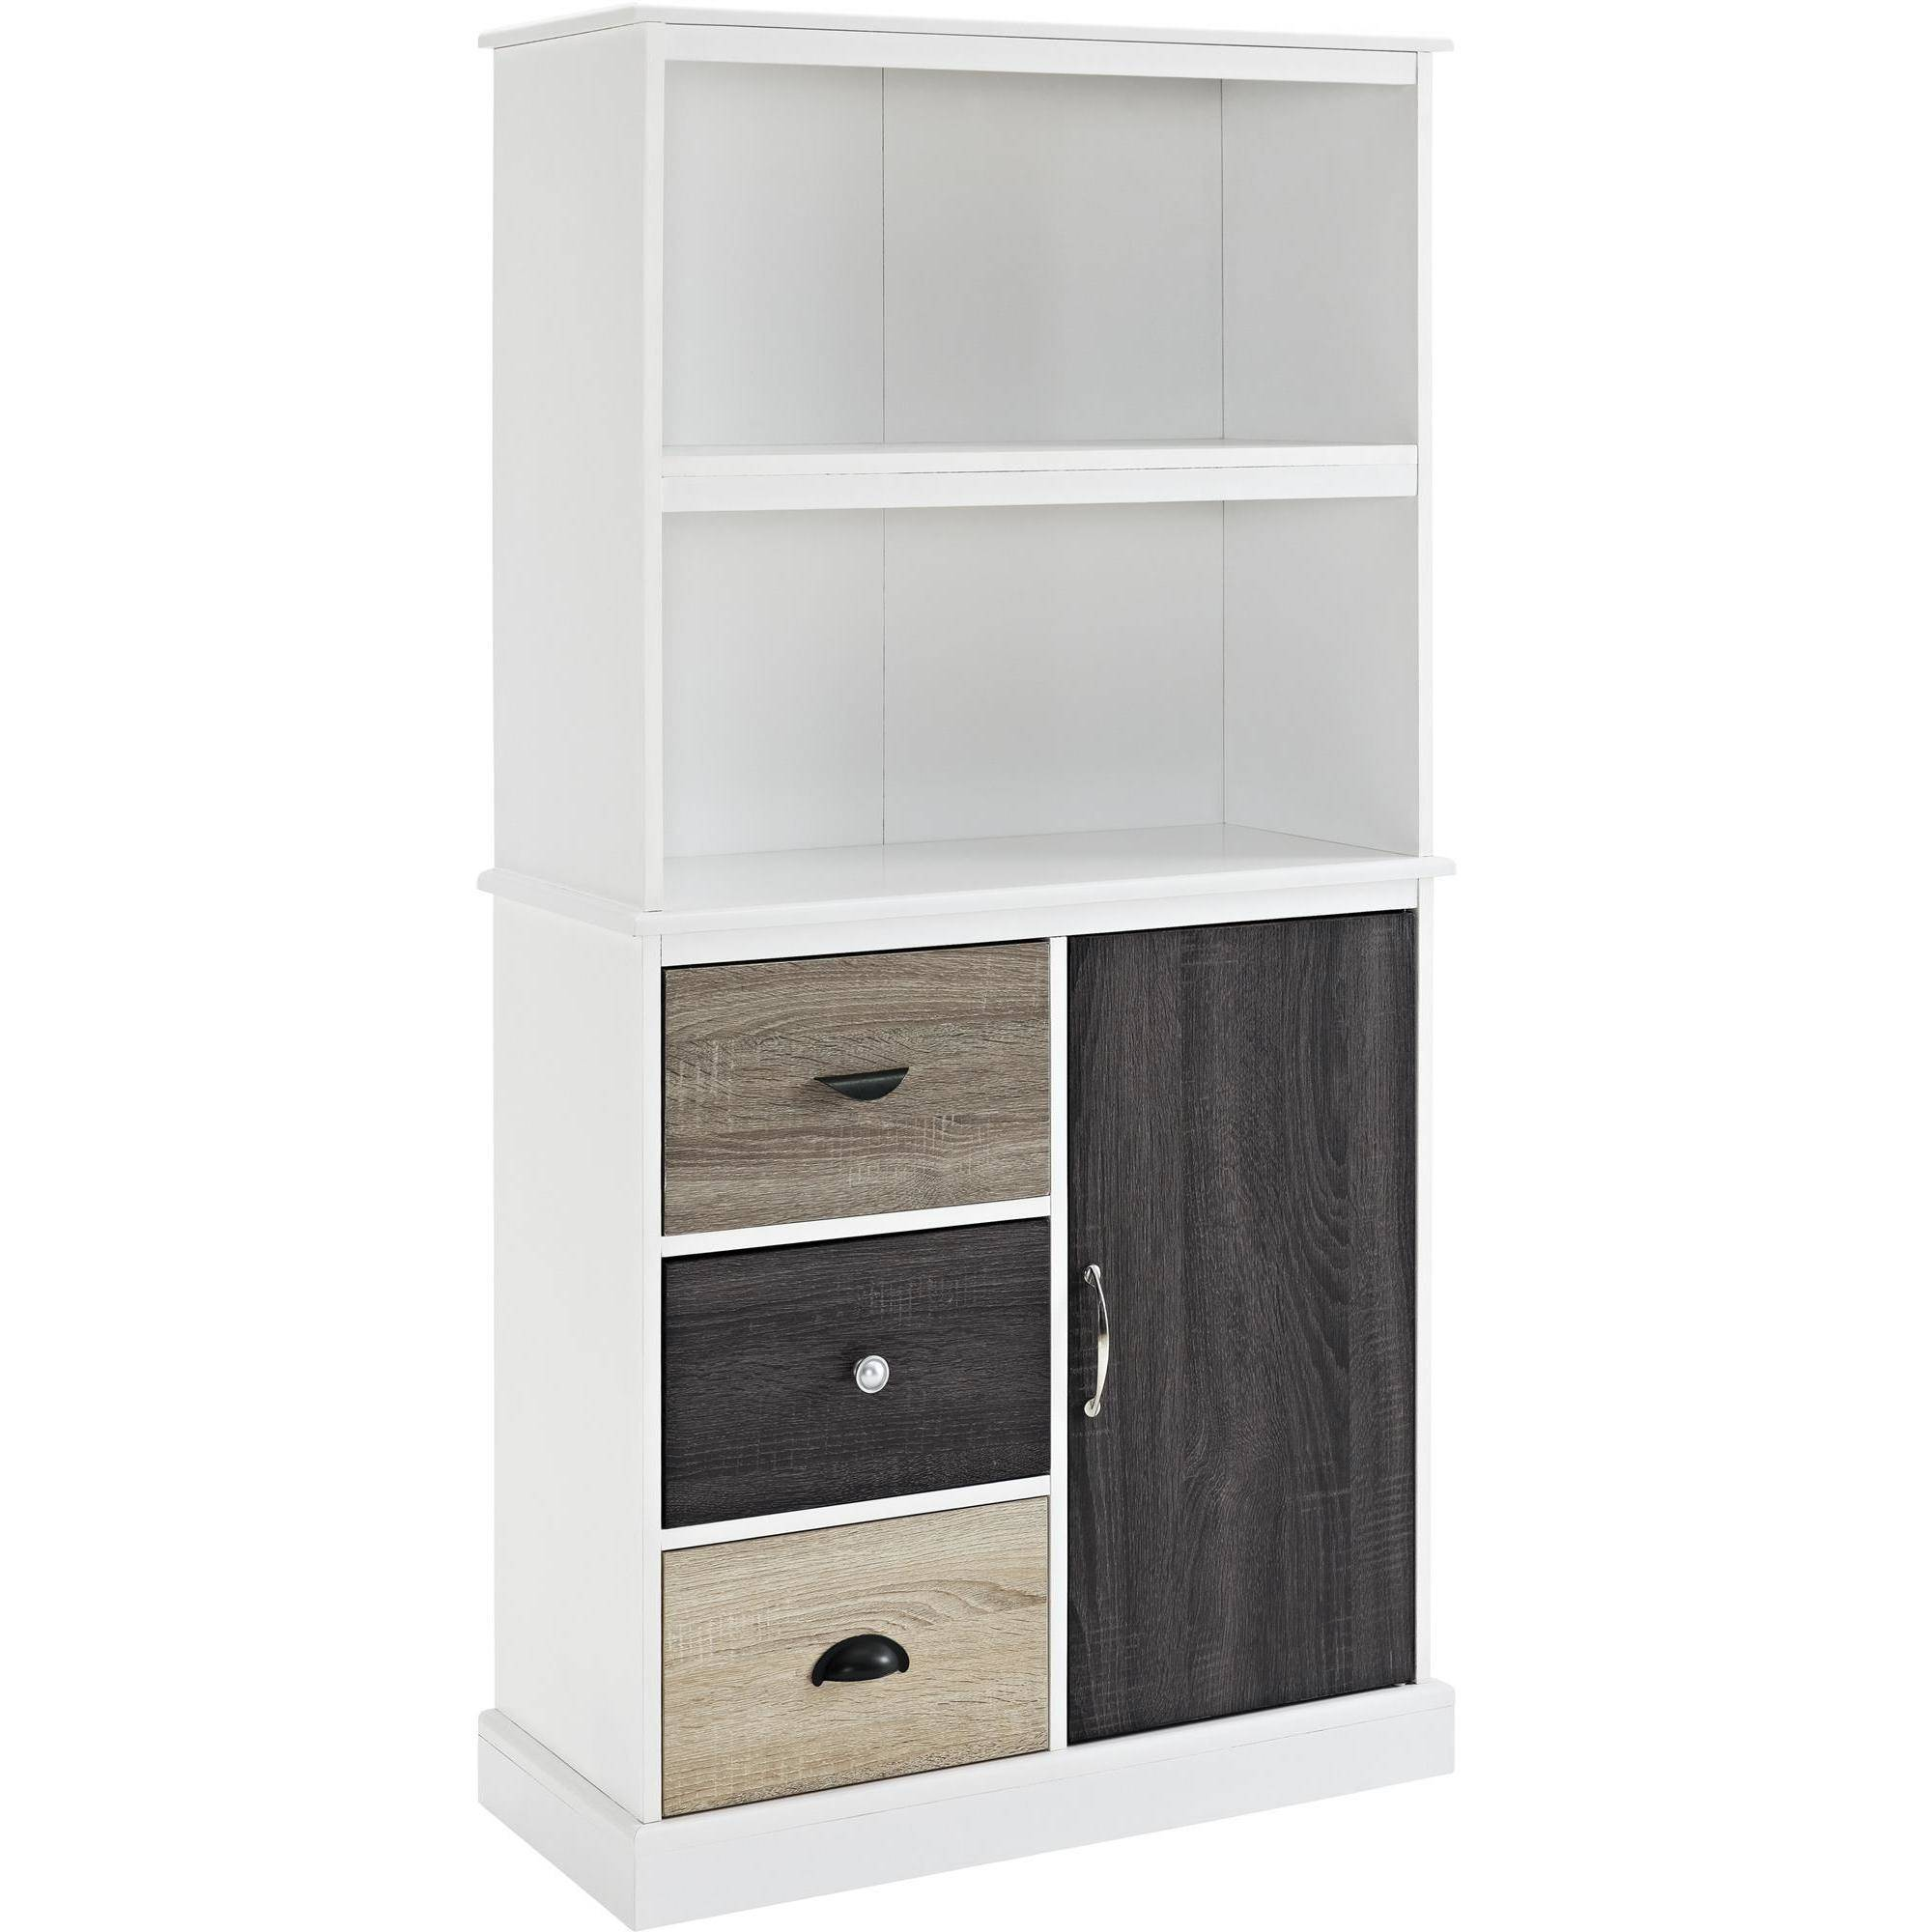 Ameriwood home mercer storage bookcase with multicolored door drawers black walmart com